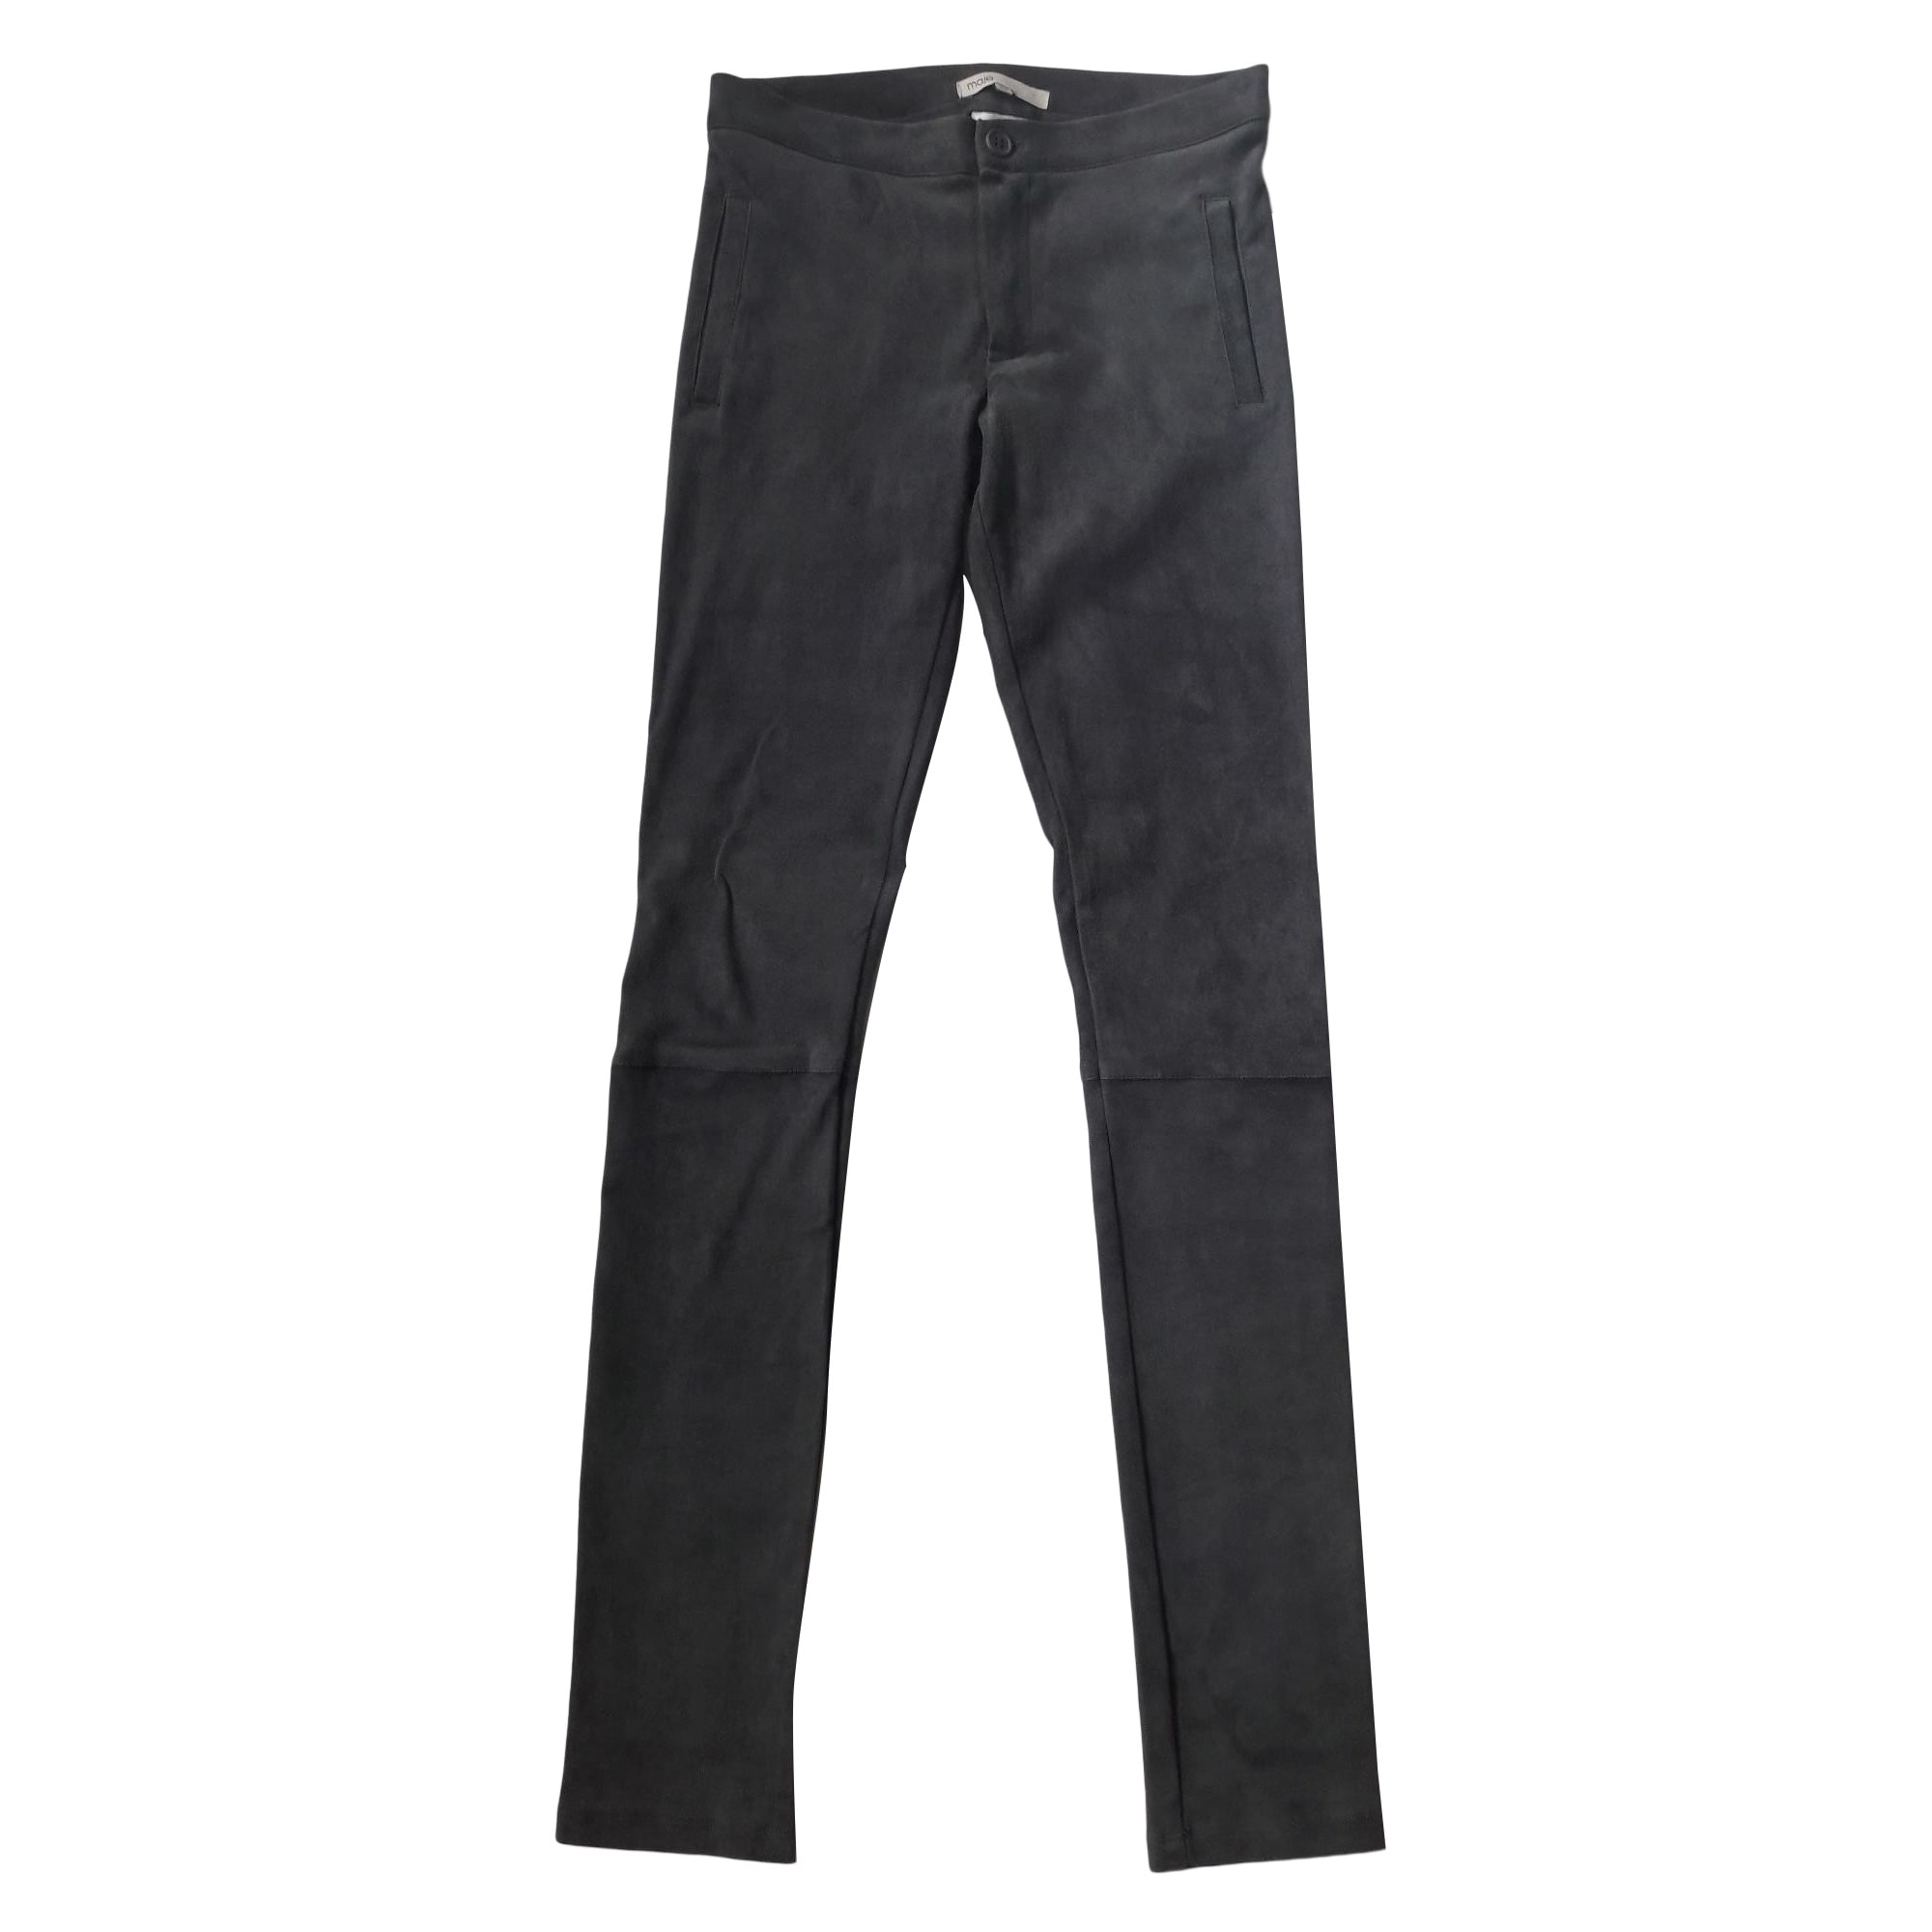 Pantalon slim, cigarette